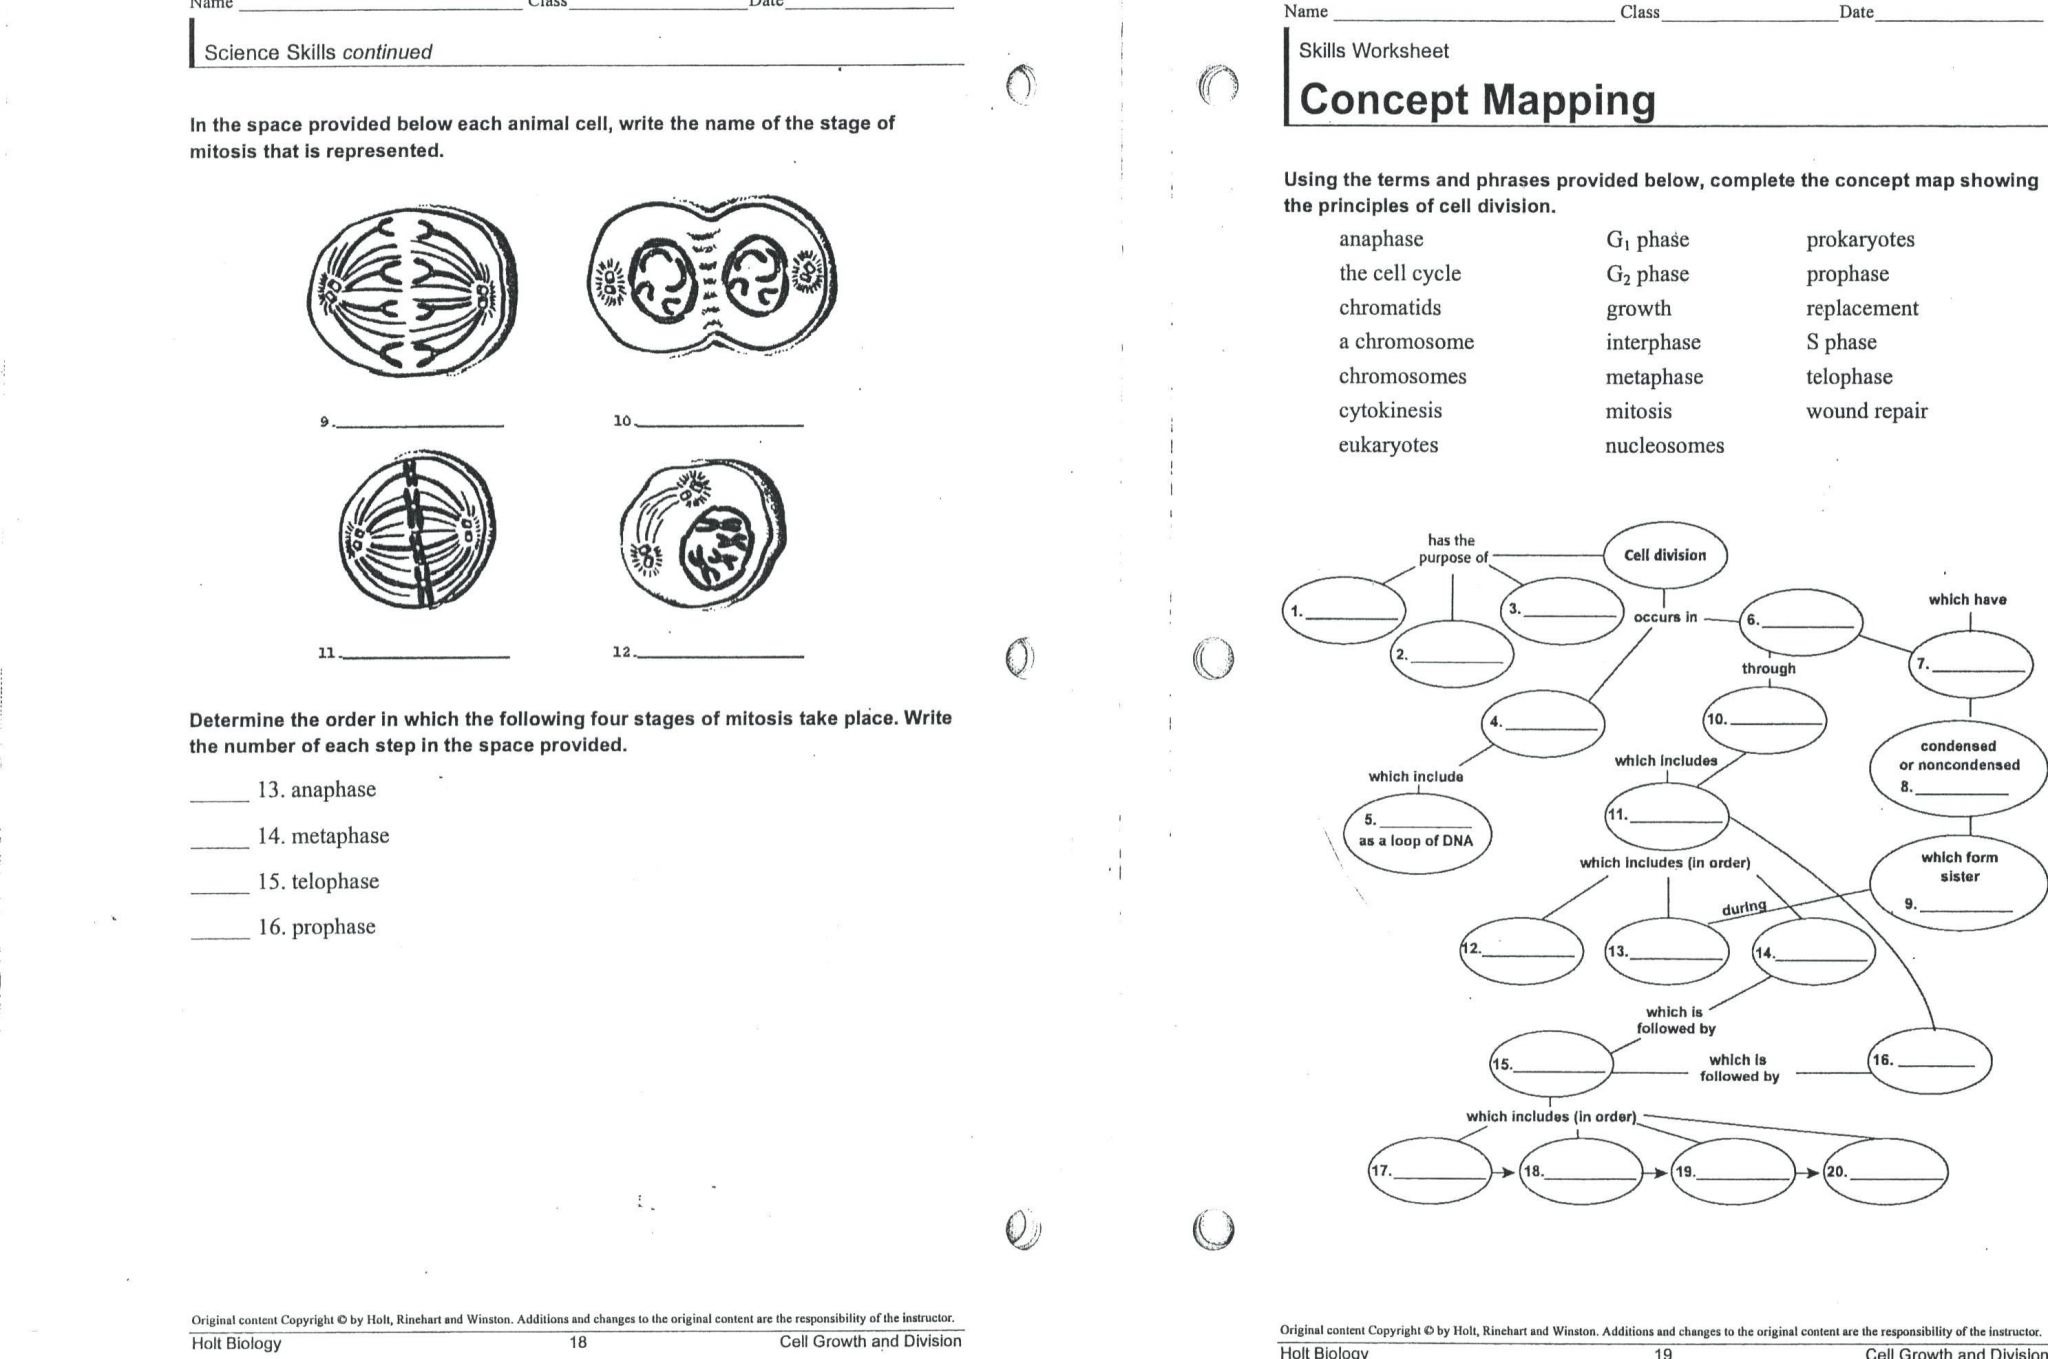 Skills Worksheet Concept Mapping Answers Holt Biology